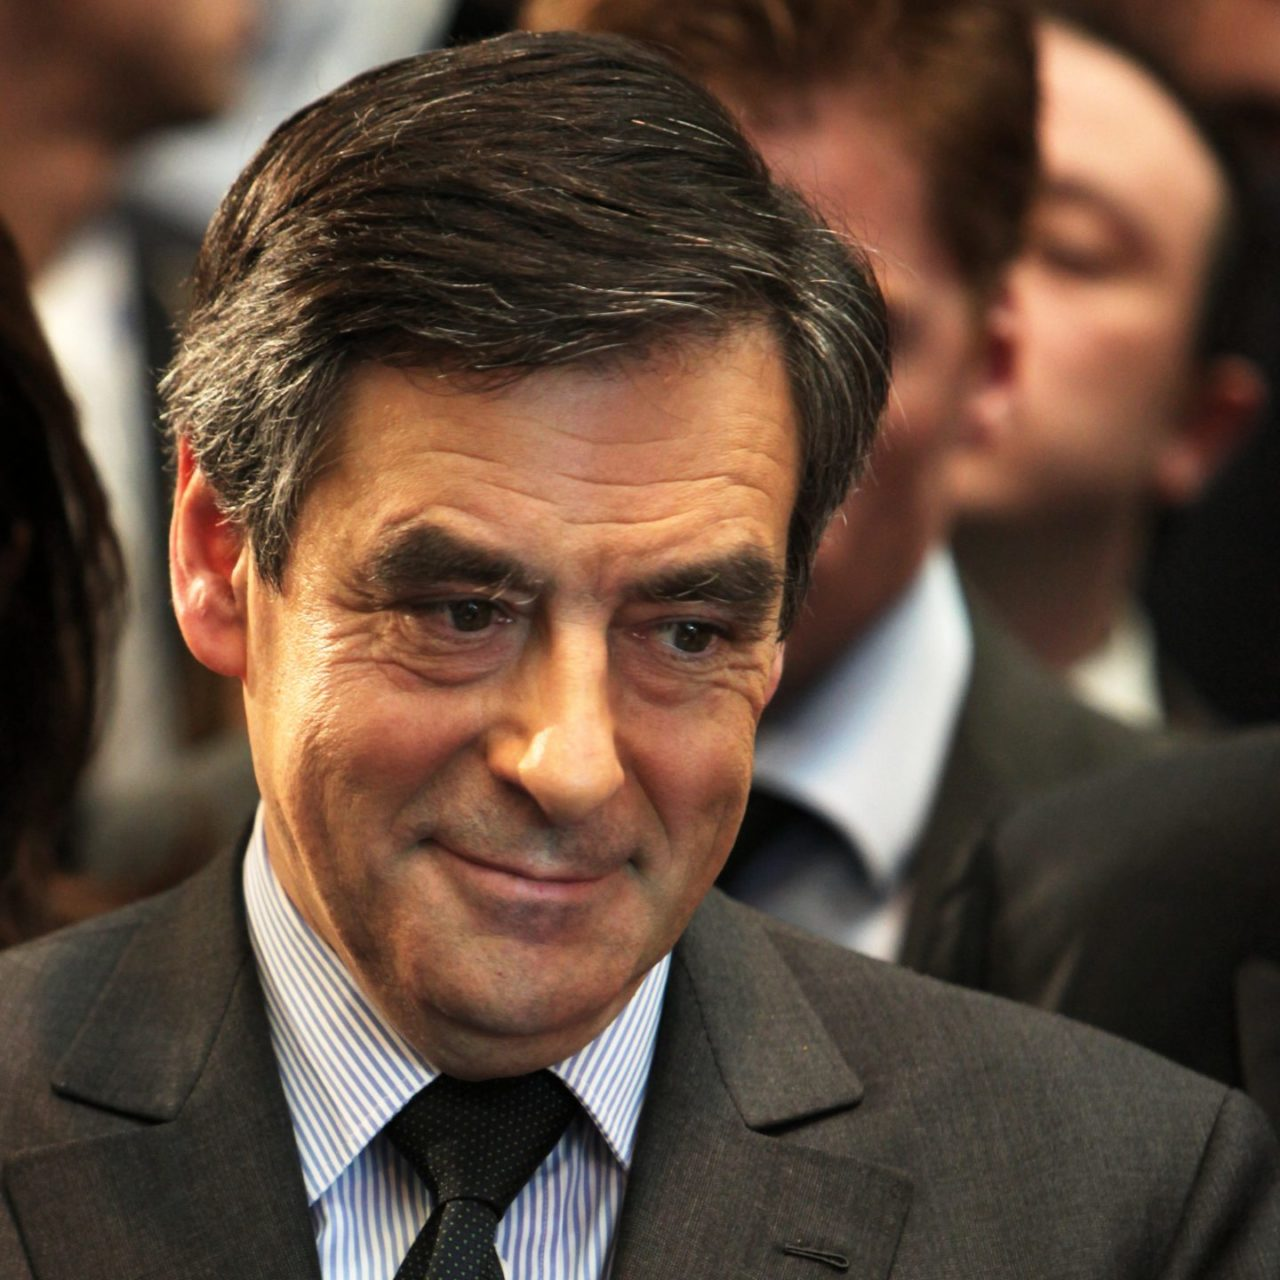 https://thesubmarine.it/wp-content/uploads/2017/03/Francois_Fillon_IMG_3361-e1488618168849-1280x1280.jpg